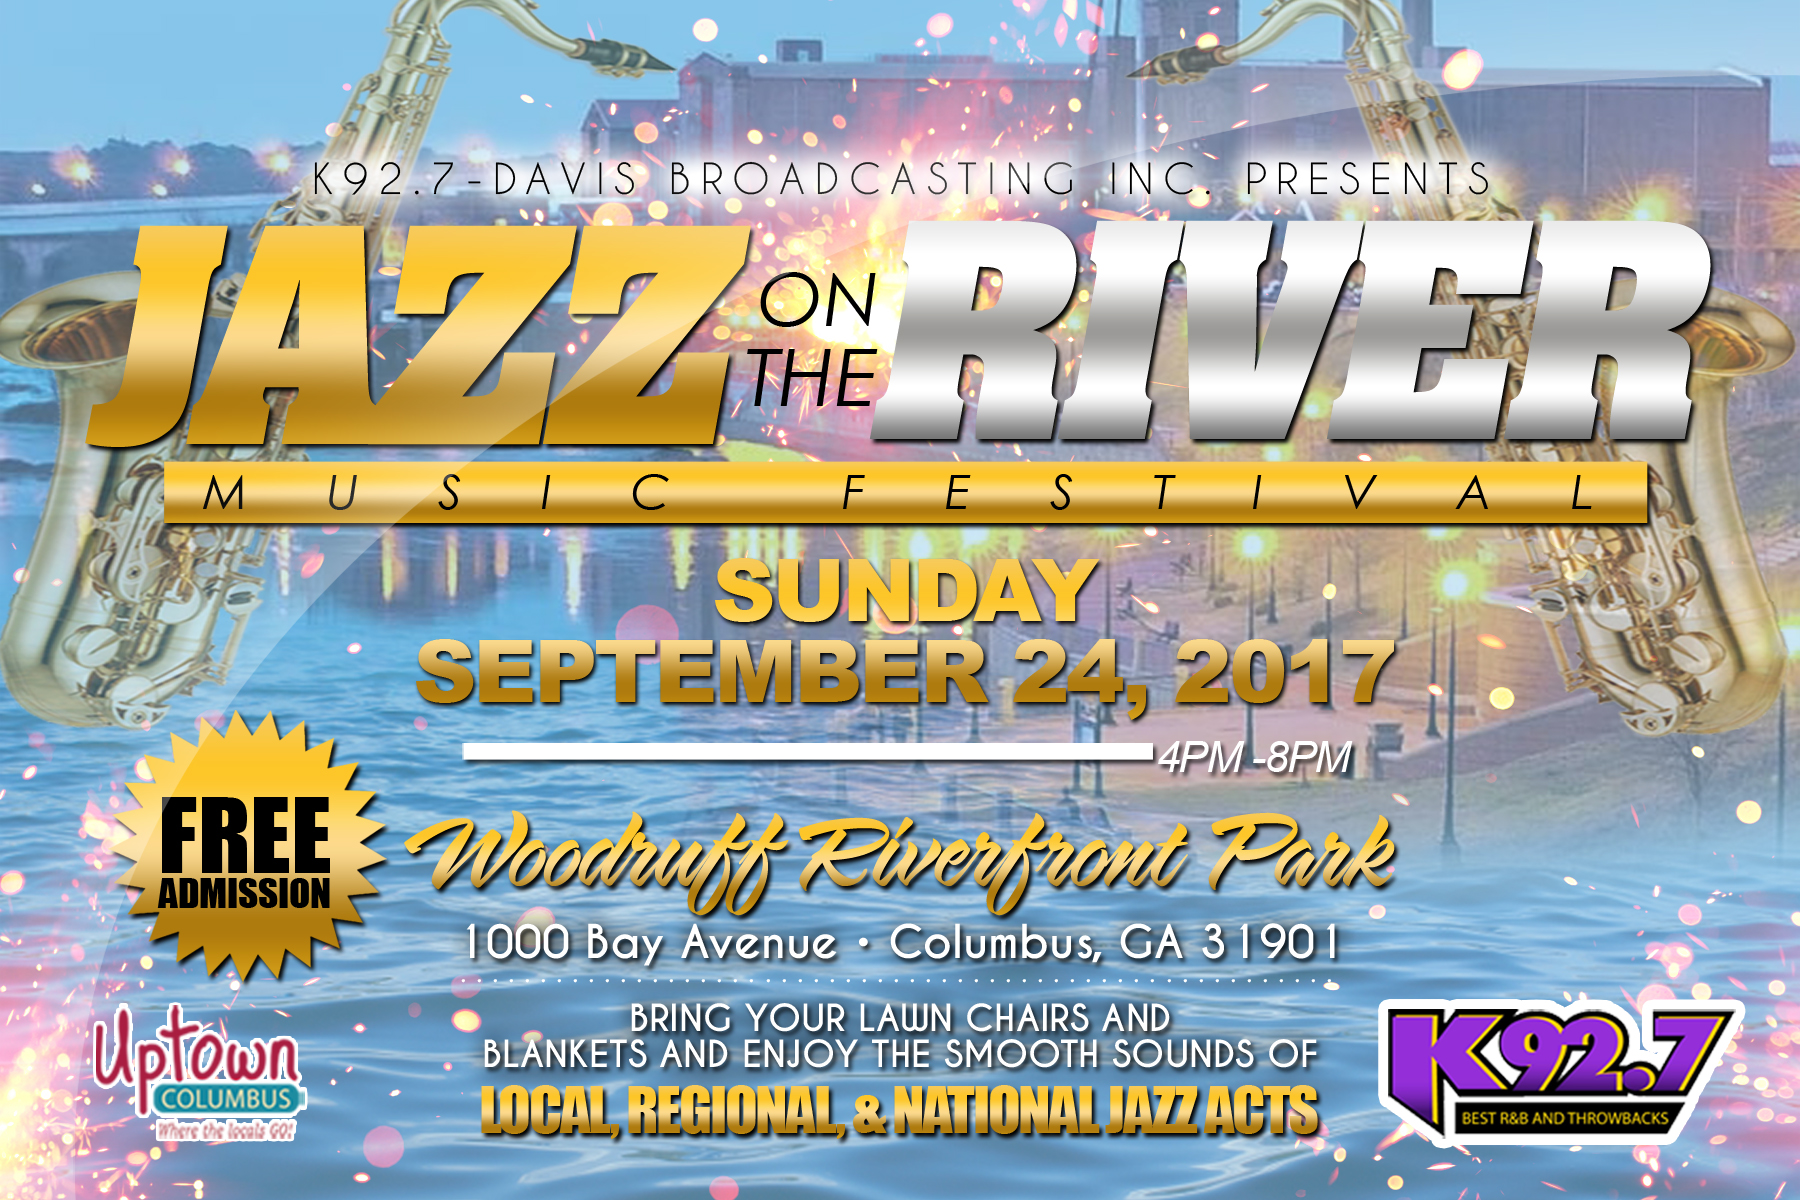 JAZZ ON THE RIVER